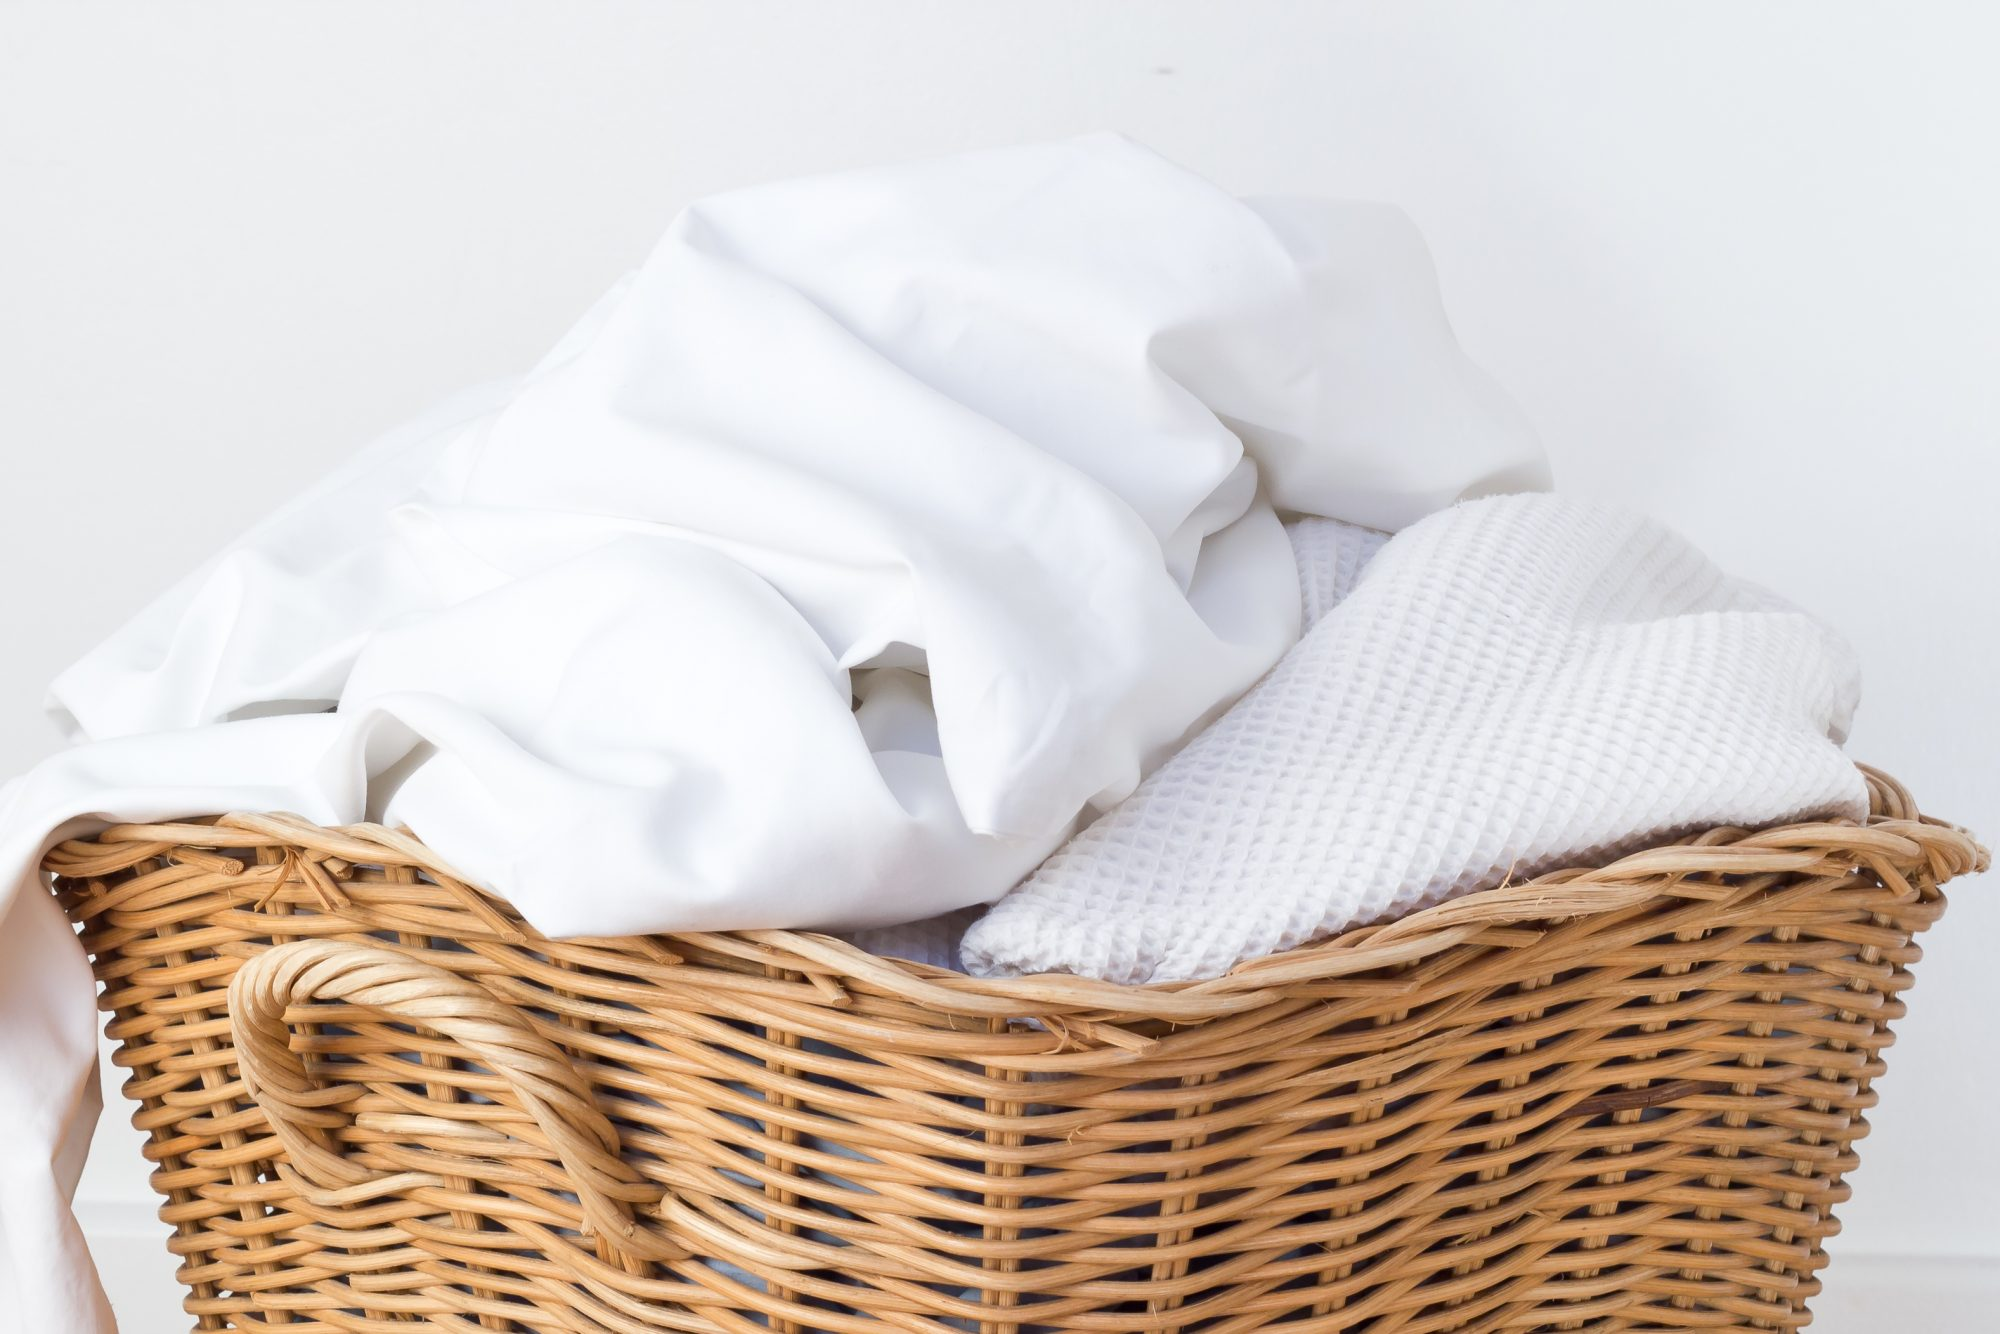 clean white sheets and towels in basket